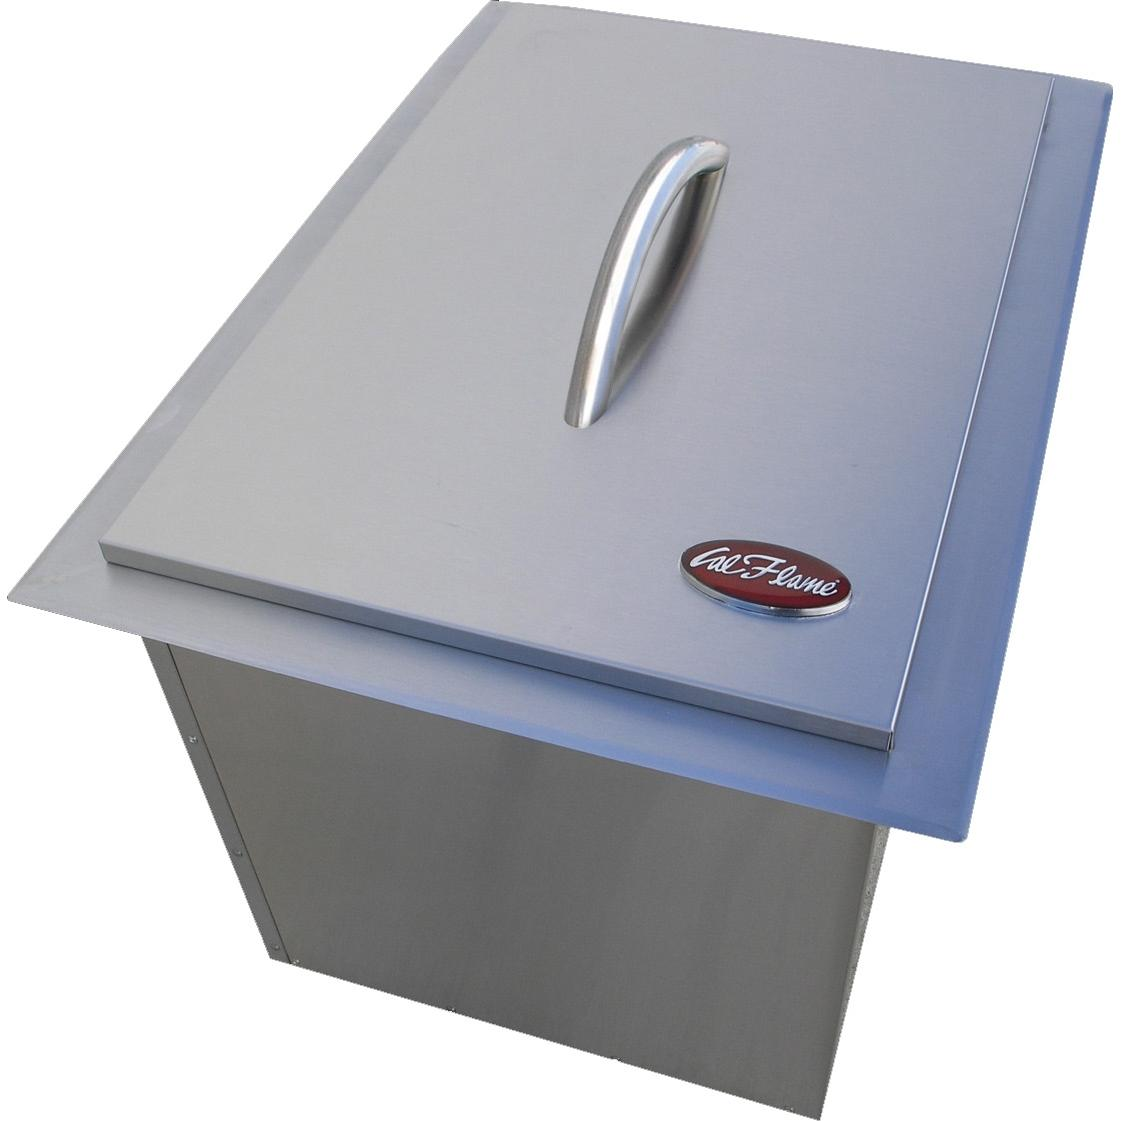 Stainless Steel Ice Bin Cooler/Wine Chiller in Outdoor Cabinets 4